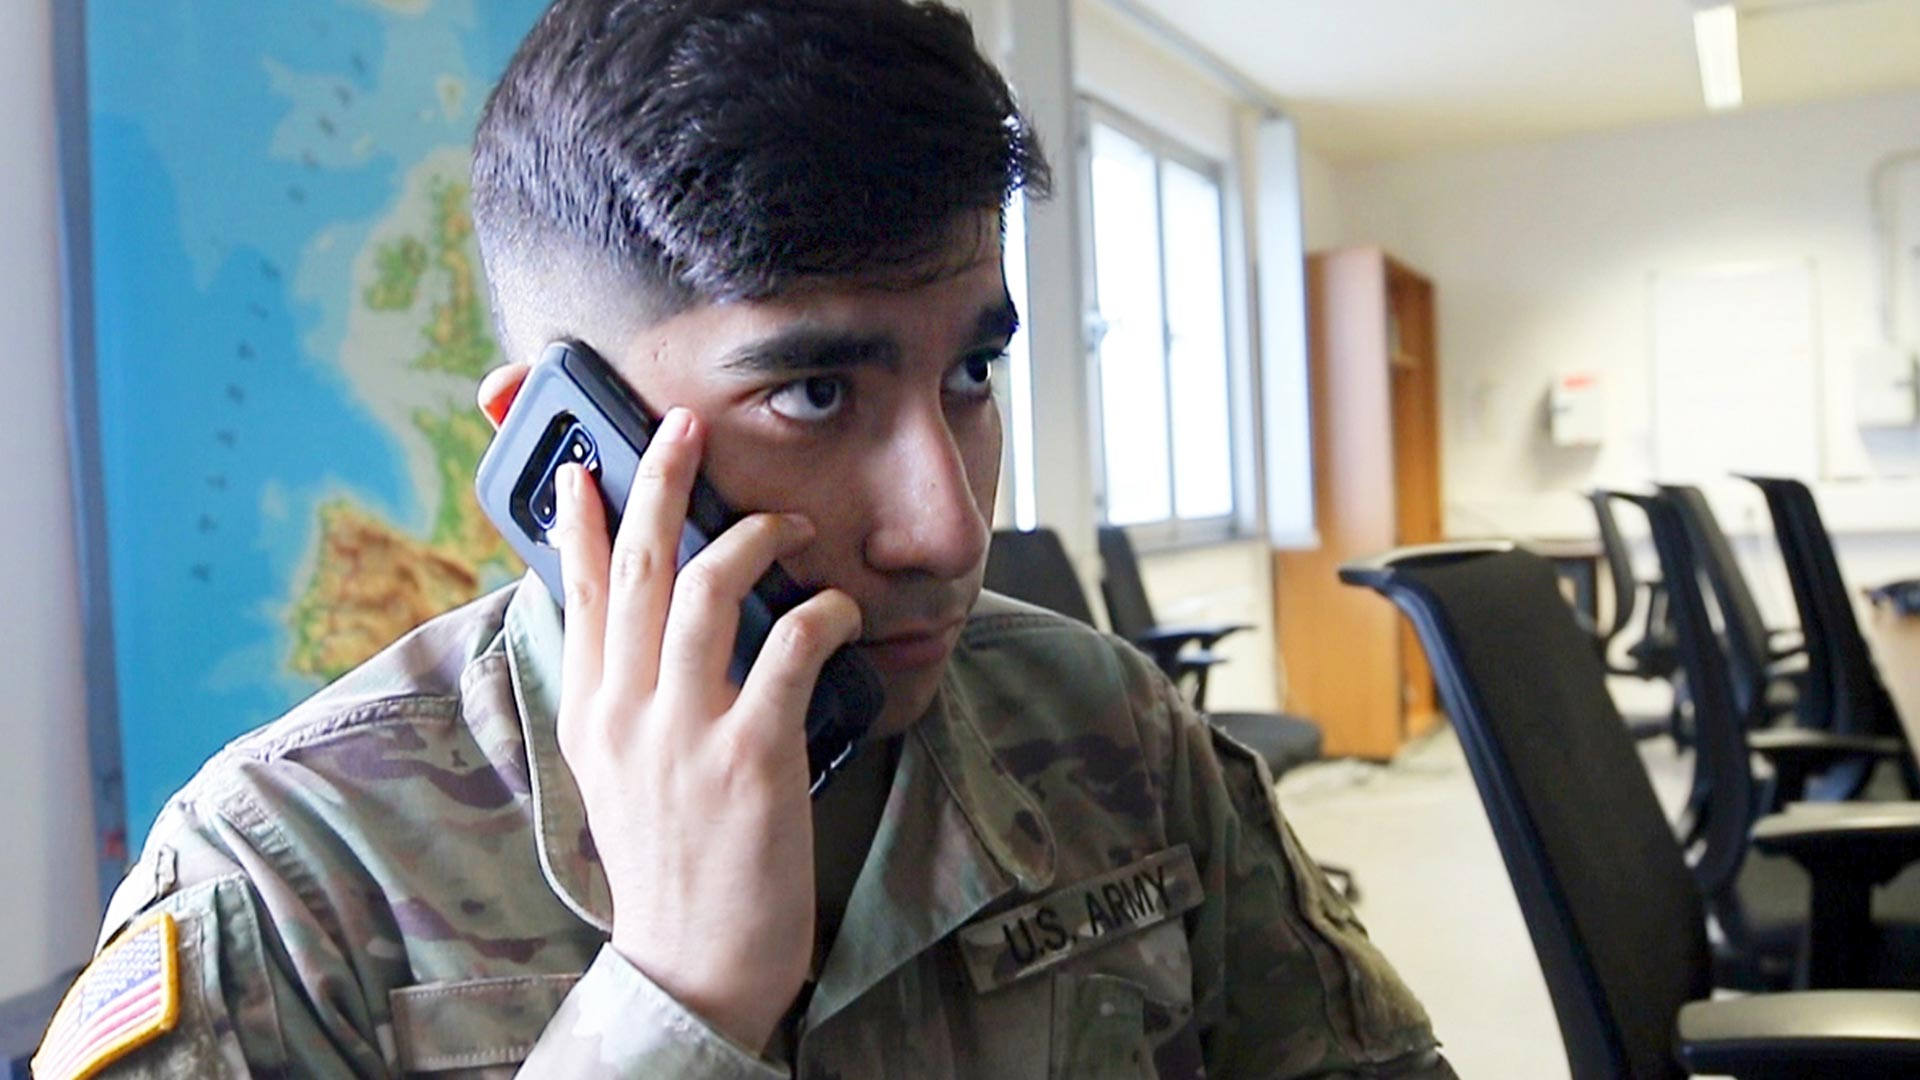 Service member talking on phone